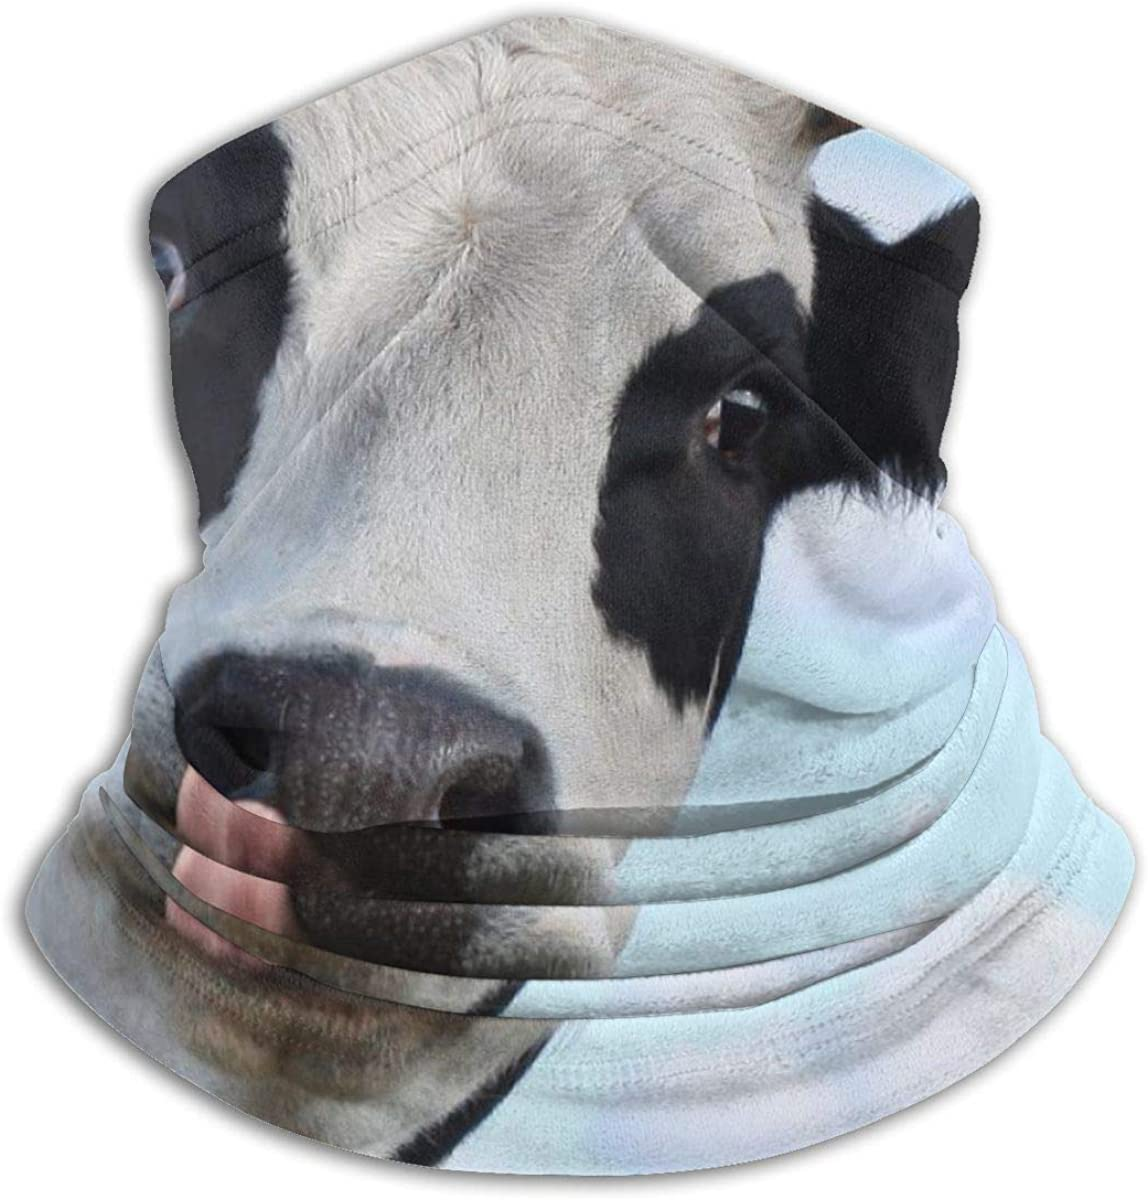 Aurora Ni Hereford Cattle Cow Blue Neck Gaiter Warmer Balaclava Headwear Face Scarf Bandana With Filters